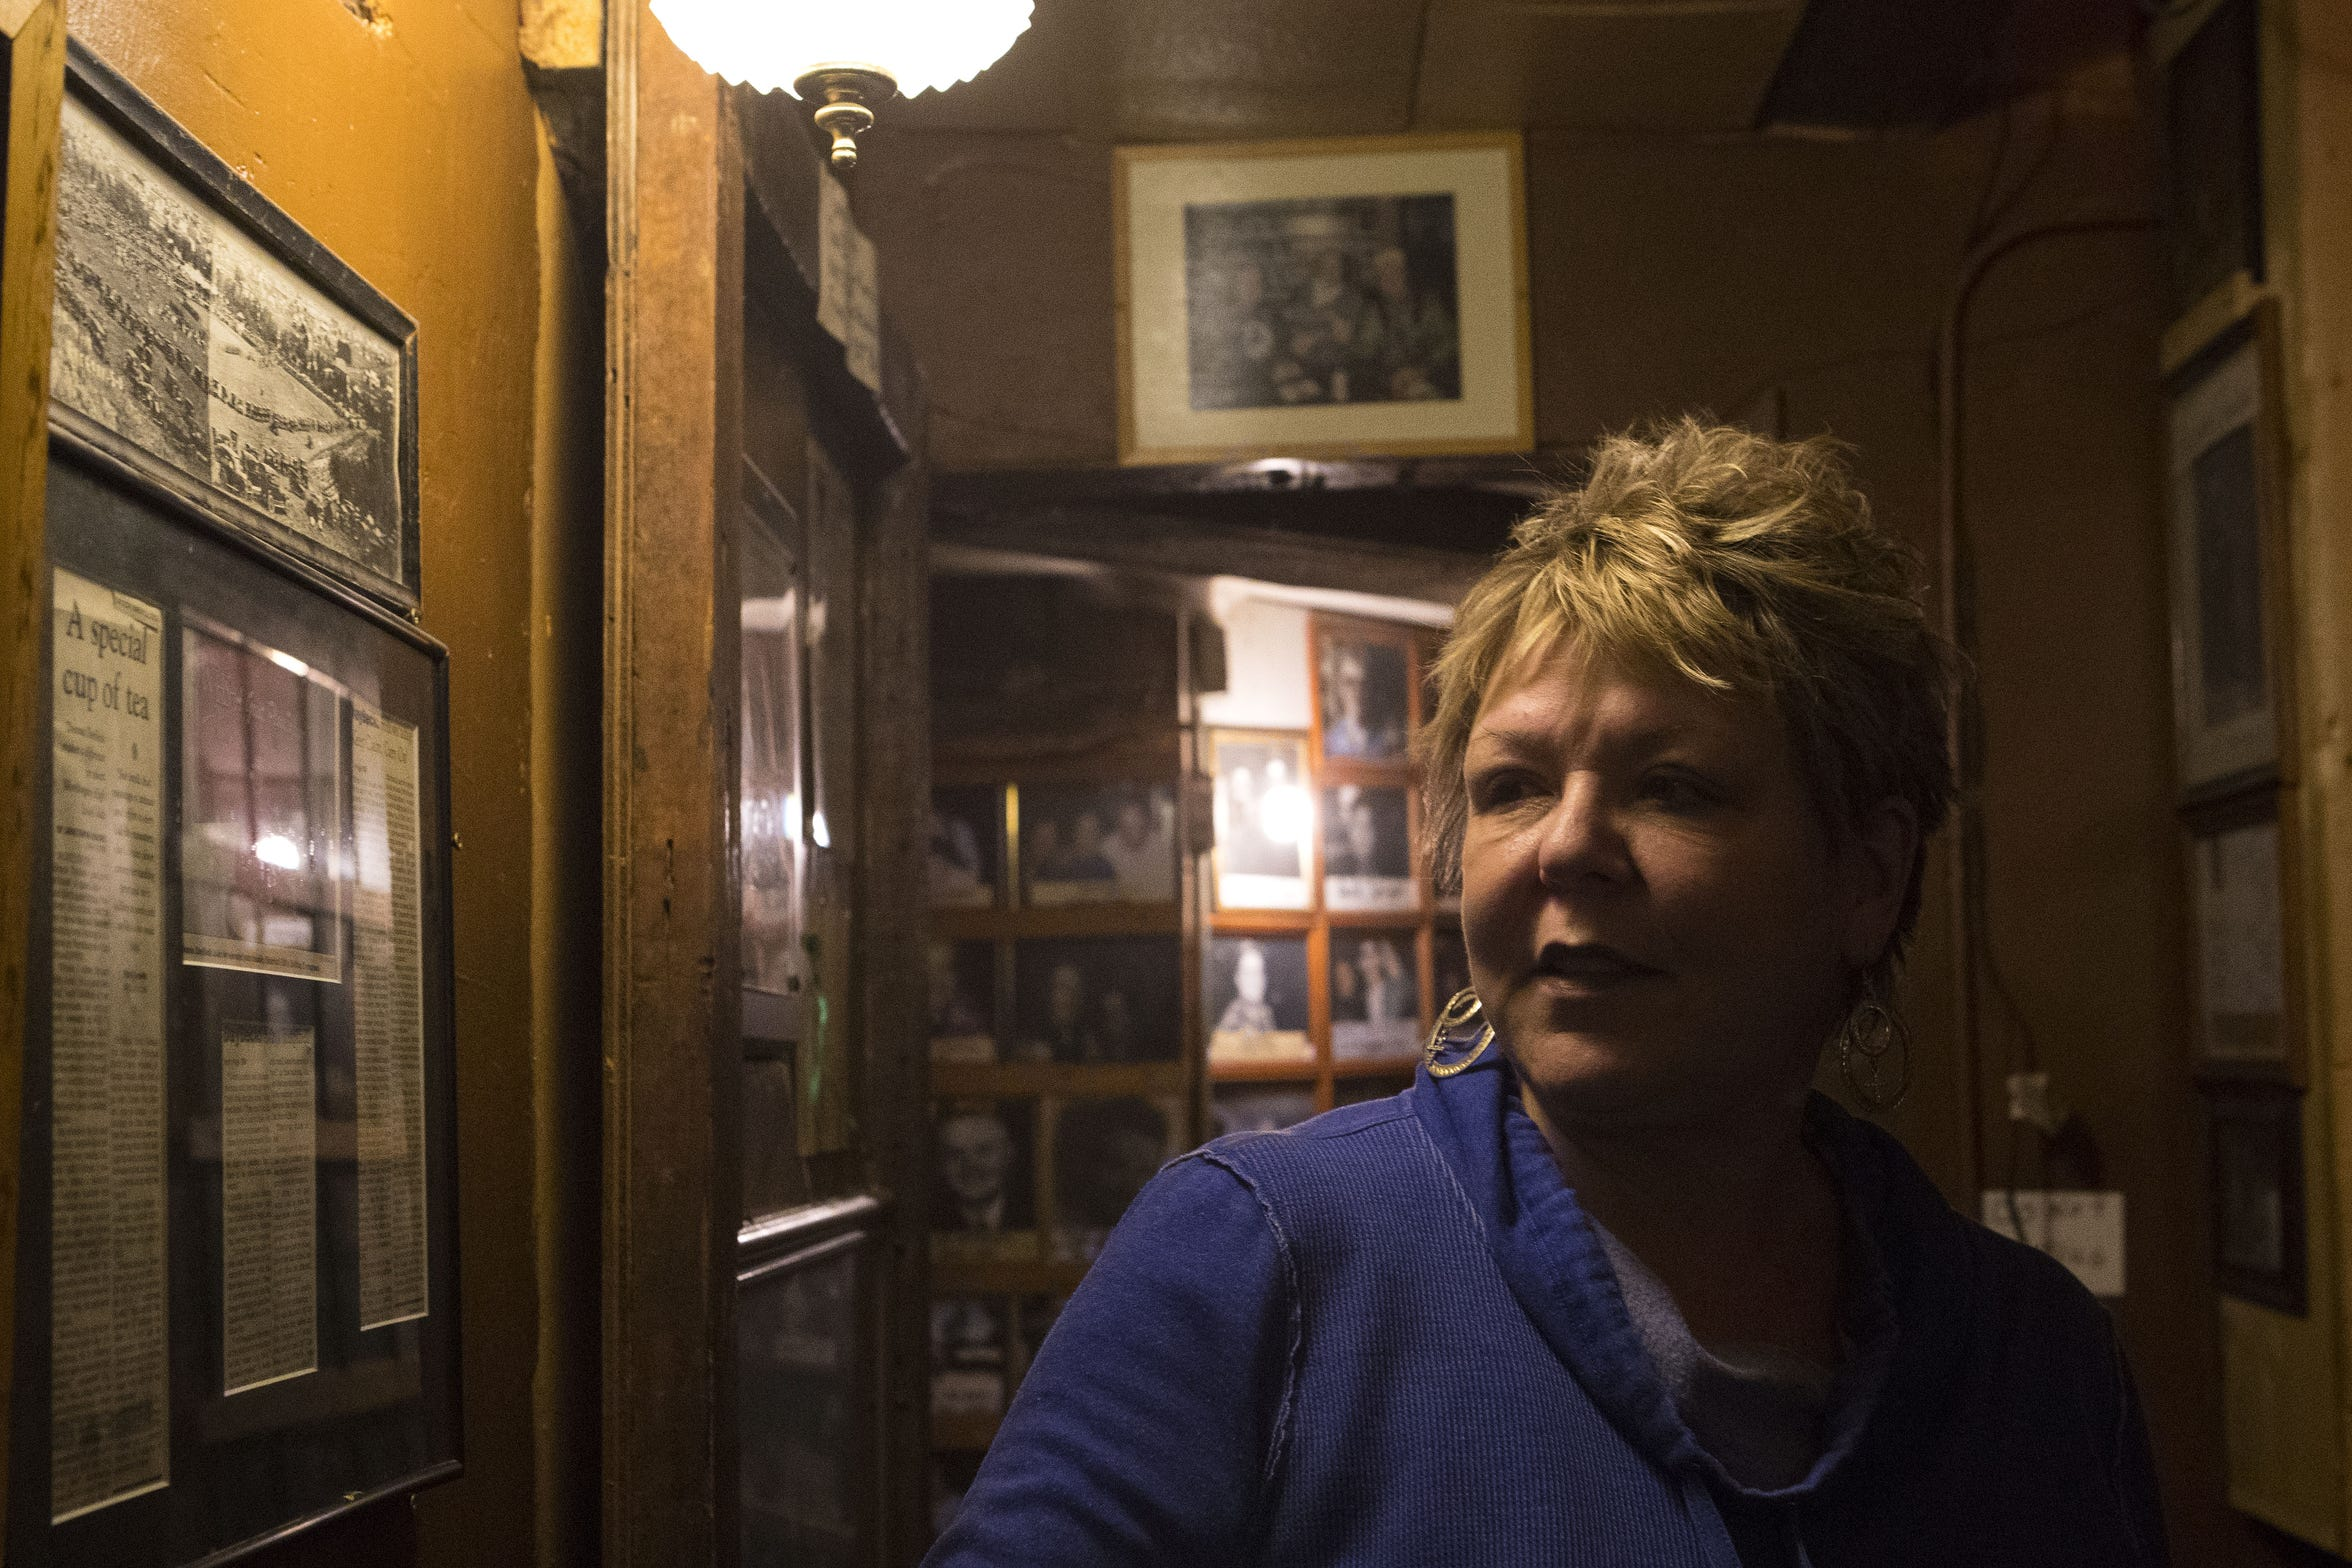 Shelly Day, owner of Frank Day's Bar and Restaurant in Dallas, S.D. talks about the many cowboy boots, framed photos of visitors and artifacts that line the walls of the bar.